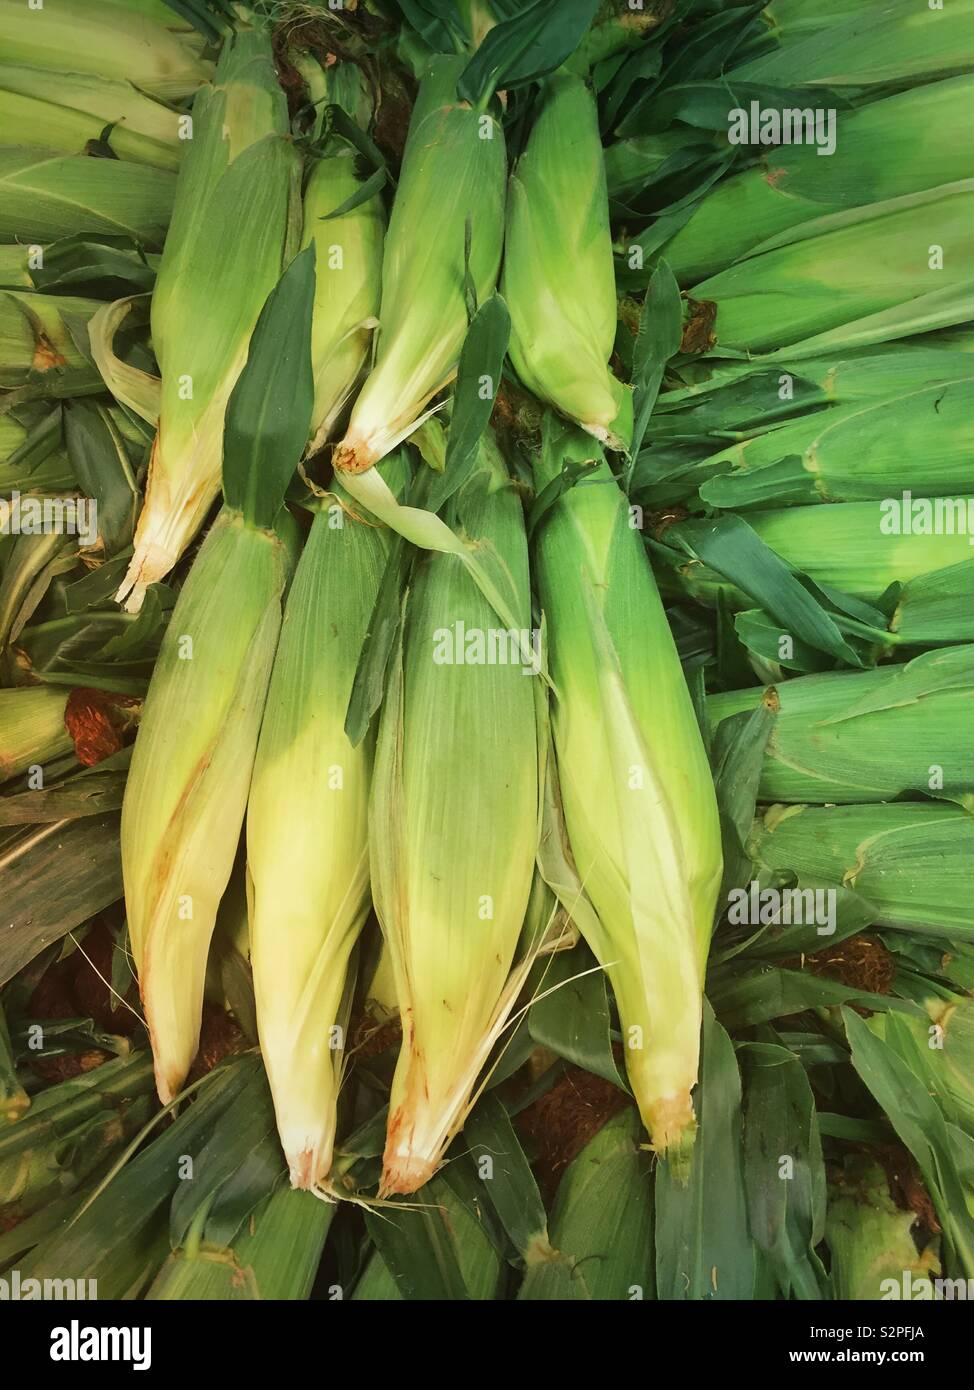 Just picked ears of sweetcorn still in the husks, USA - Stock Image